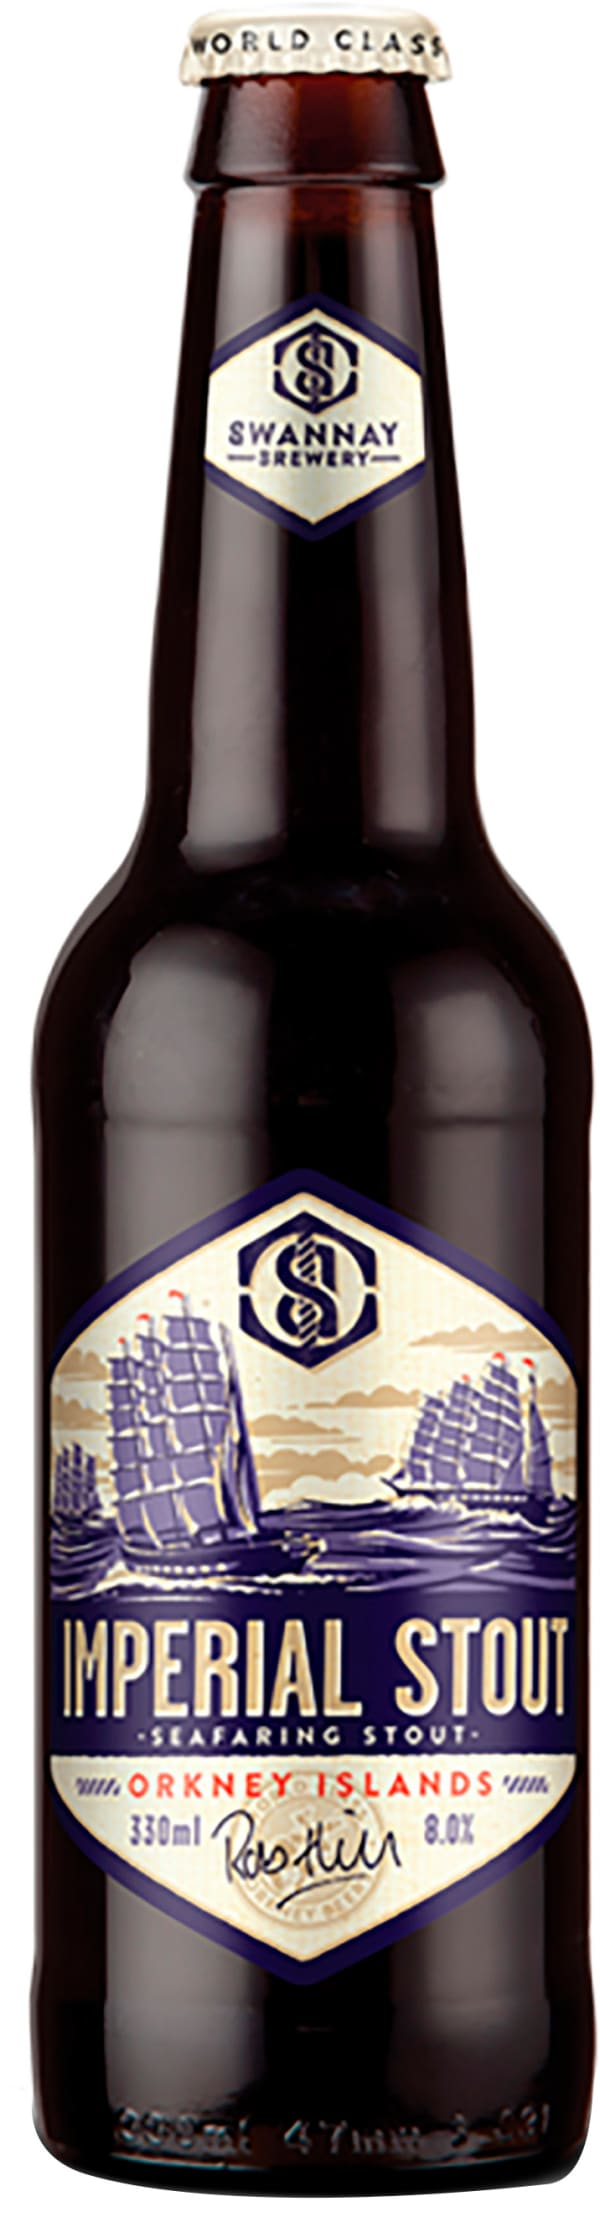 Swannay Imperial Stout